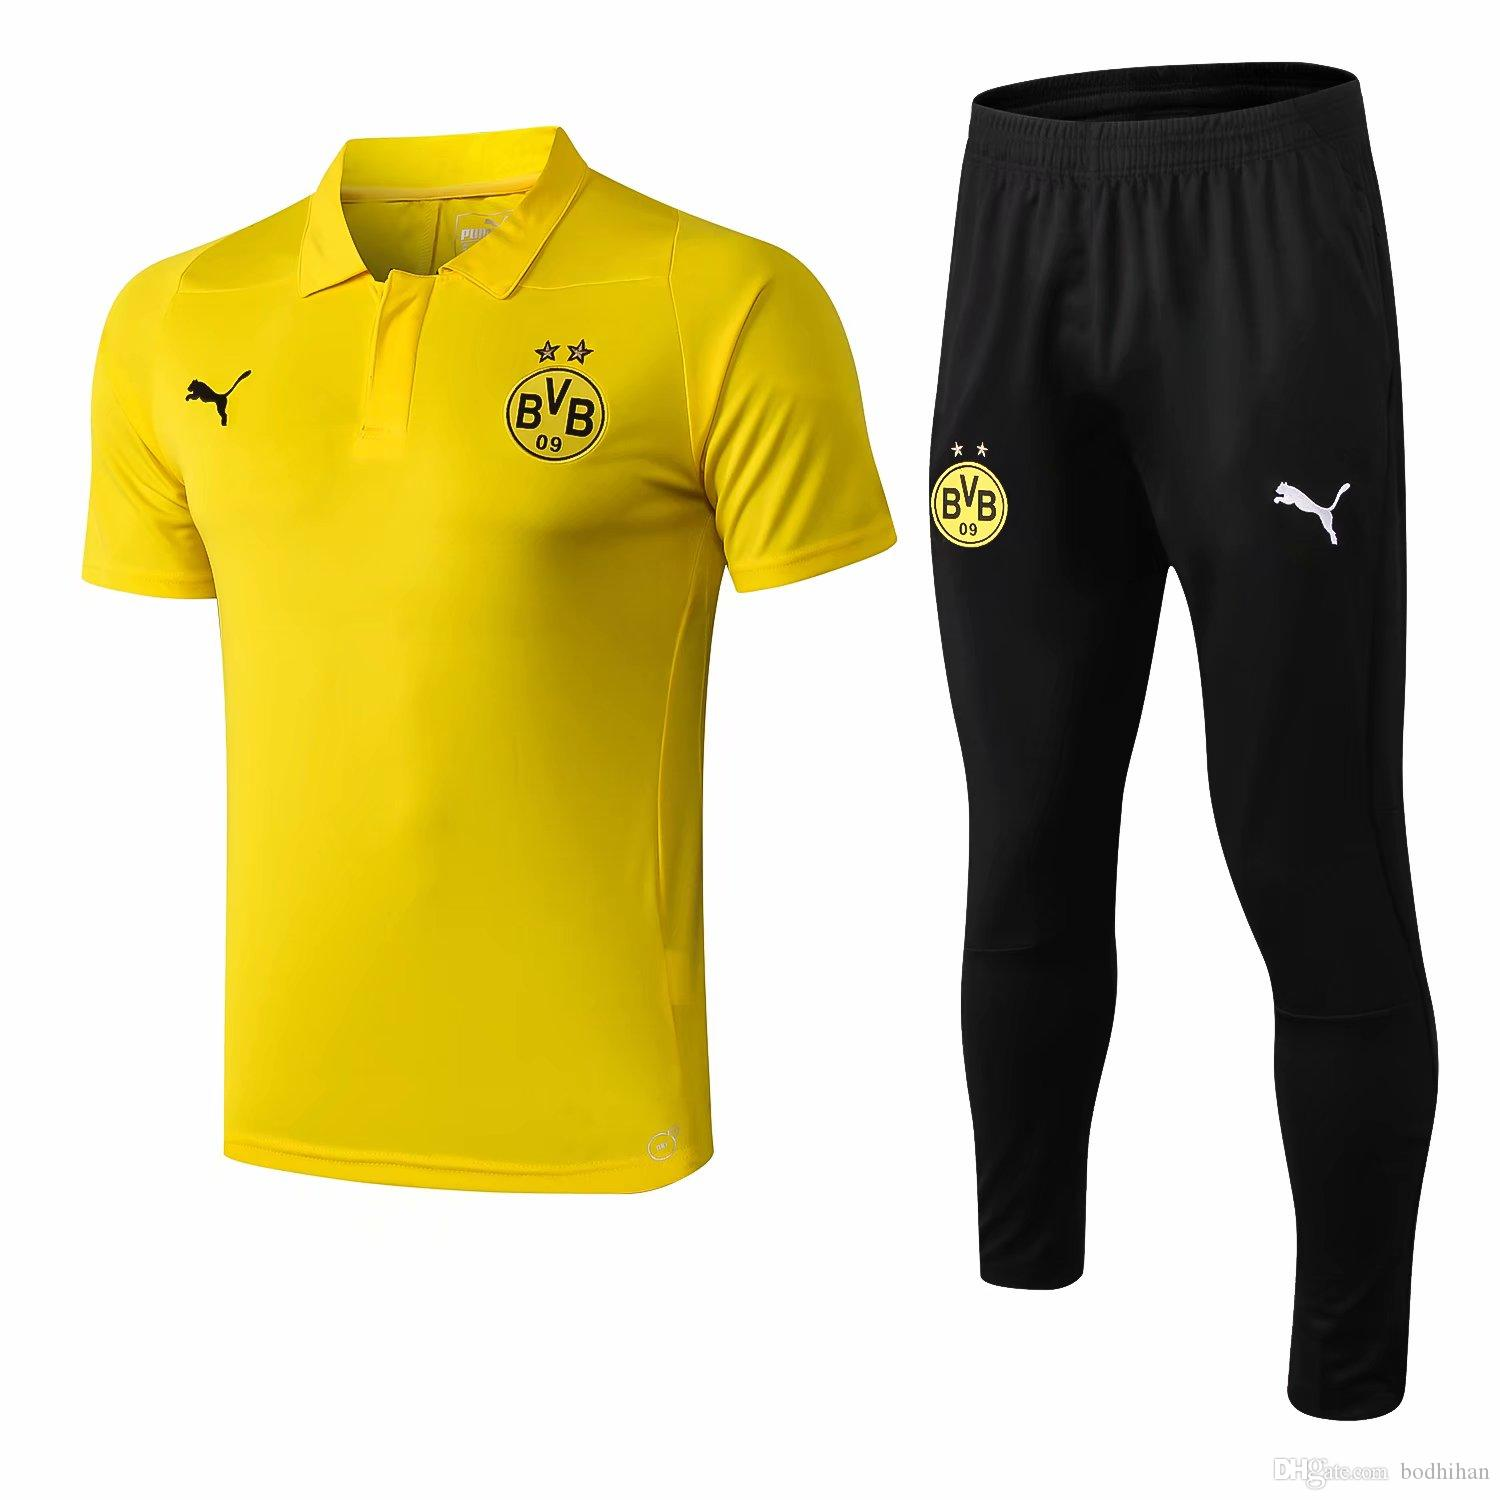 66815ef1ce6 2019 18 19 Newest Borussia Dortmund Polos Shirts Yellow Adult Soccer Jerseys  2019 Tracksuits PACO Sportswear REUS Short Sleeve Training Suits From  Bodhihan, ...